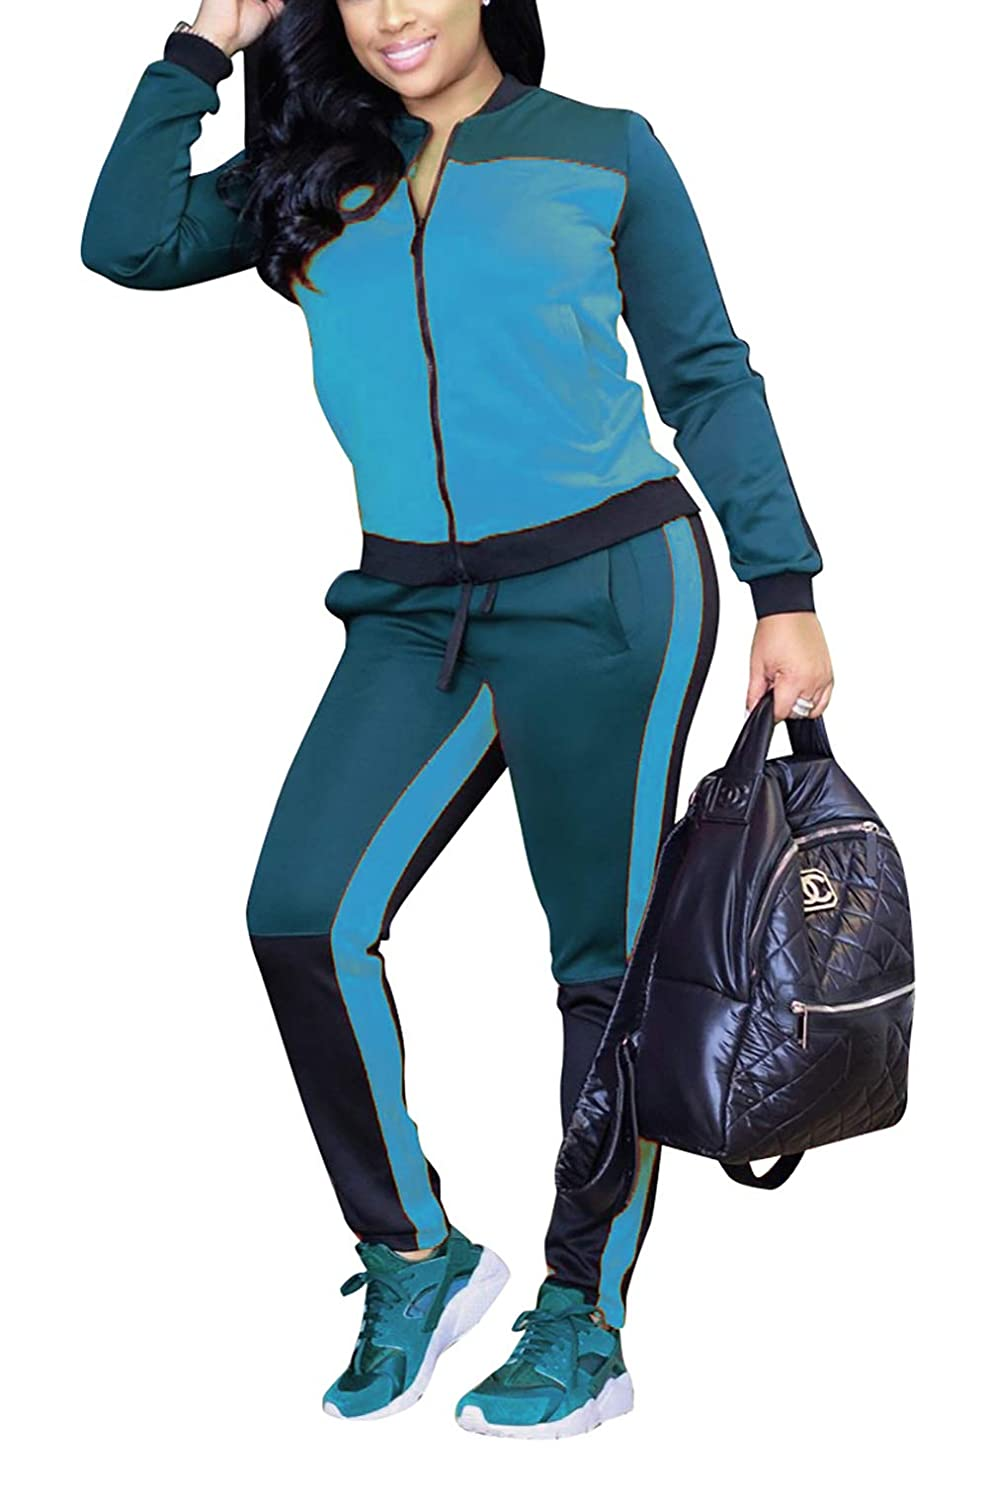 8d786d6478672 DingAng Women 2 Pieces Outfits Long Sleeve Zipper Jacket Long Pants  Sweatsuits Set Tracksuits at Amazon Women s Clothing store